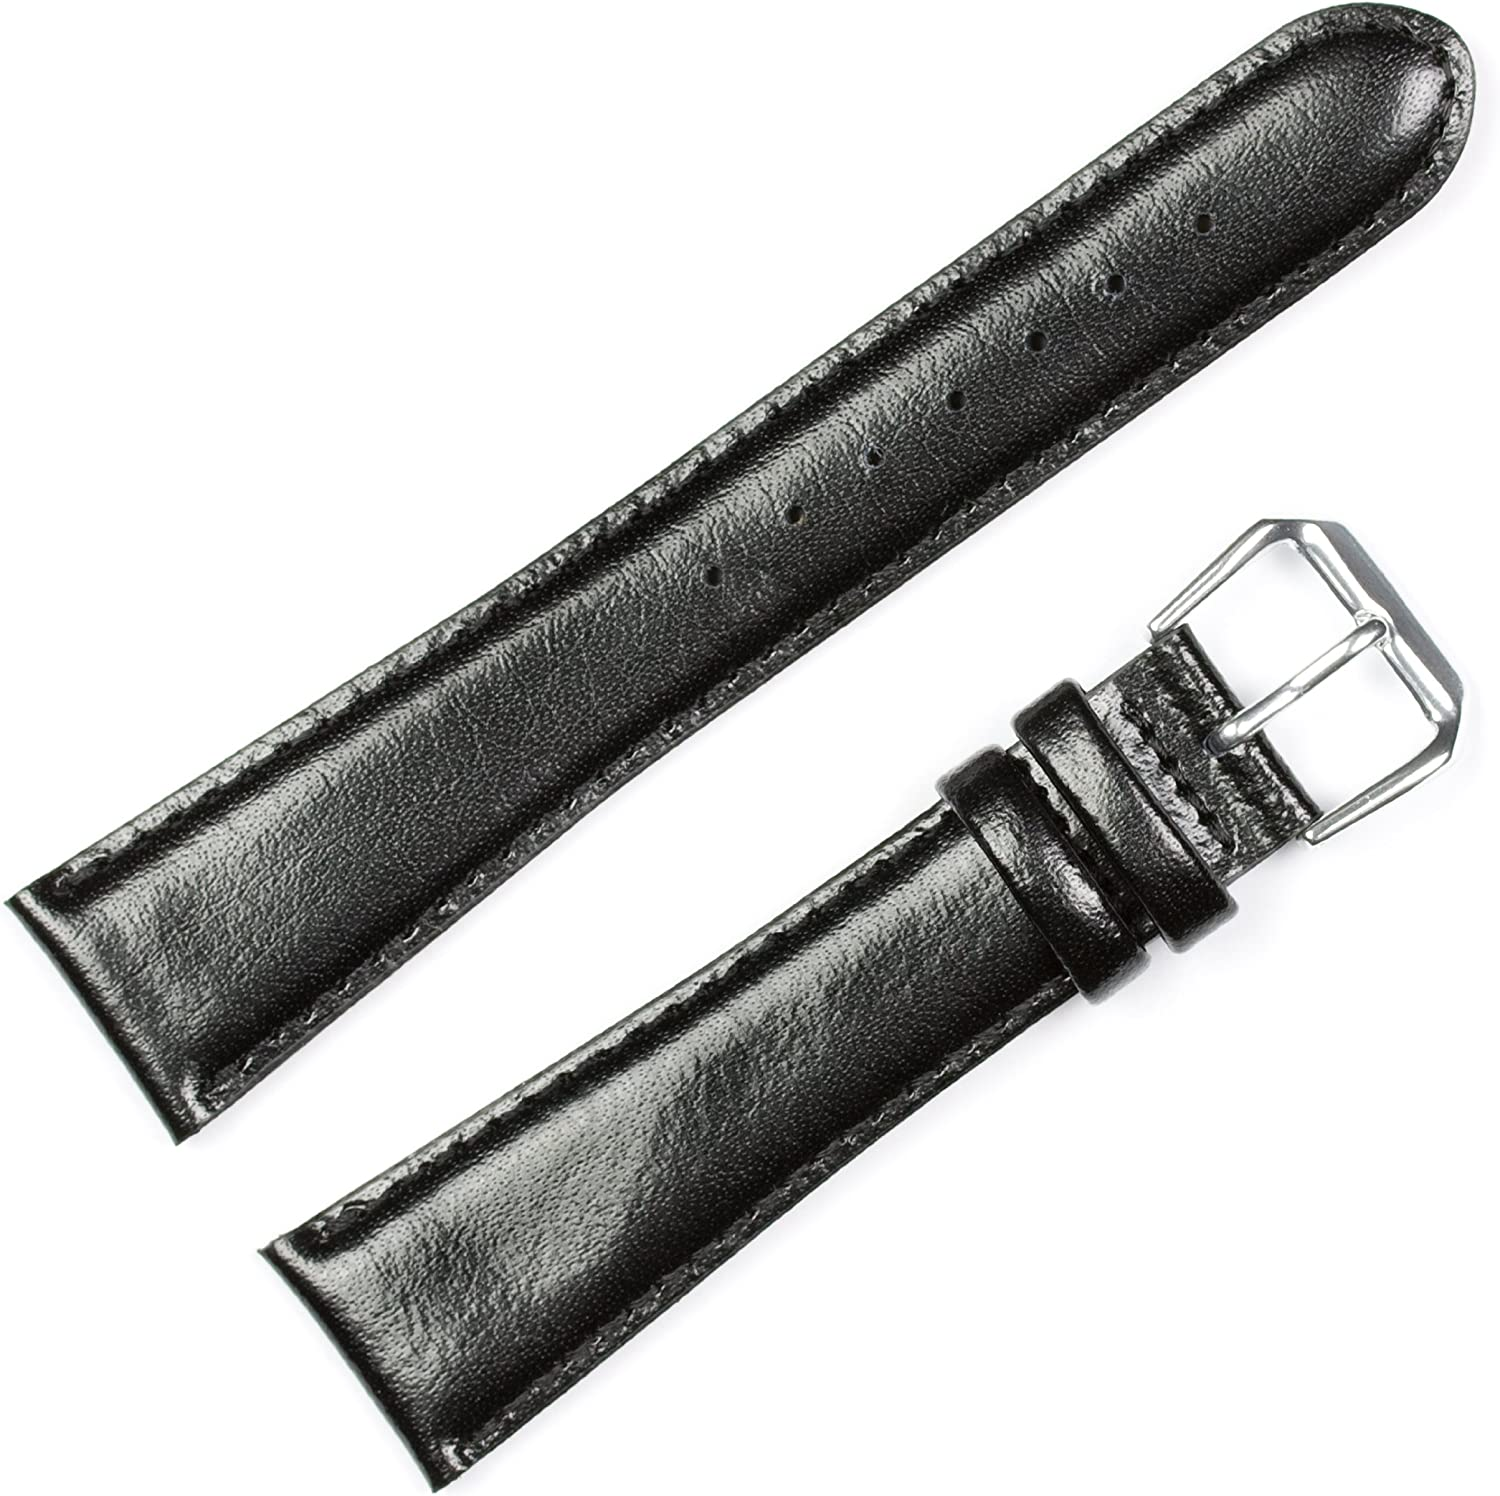 Smooth Leather Watchband Black 17mm Watch Band - by deBeer